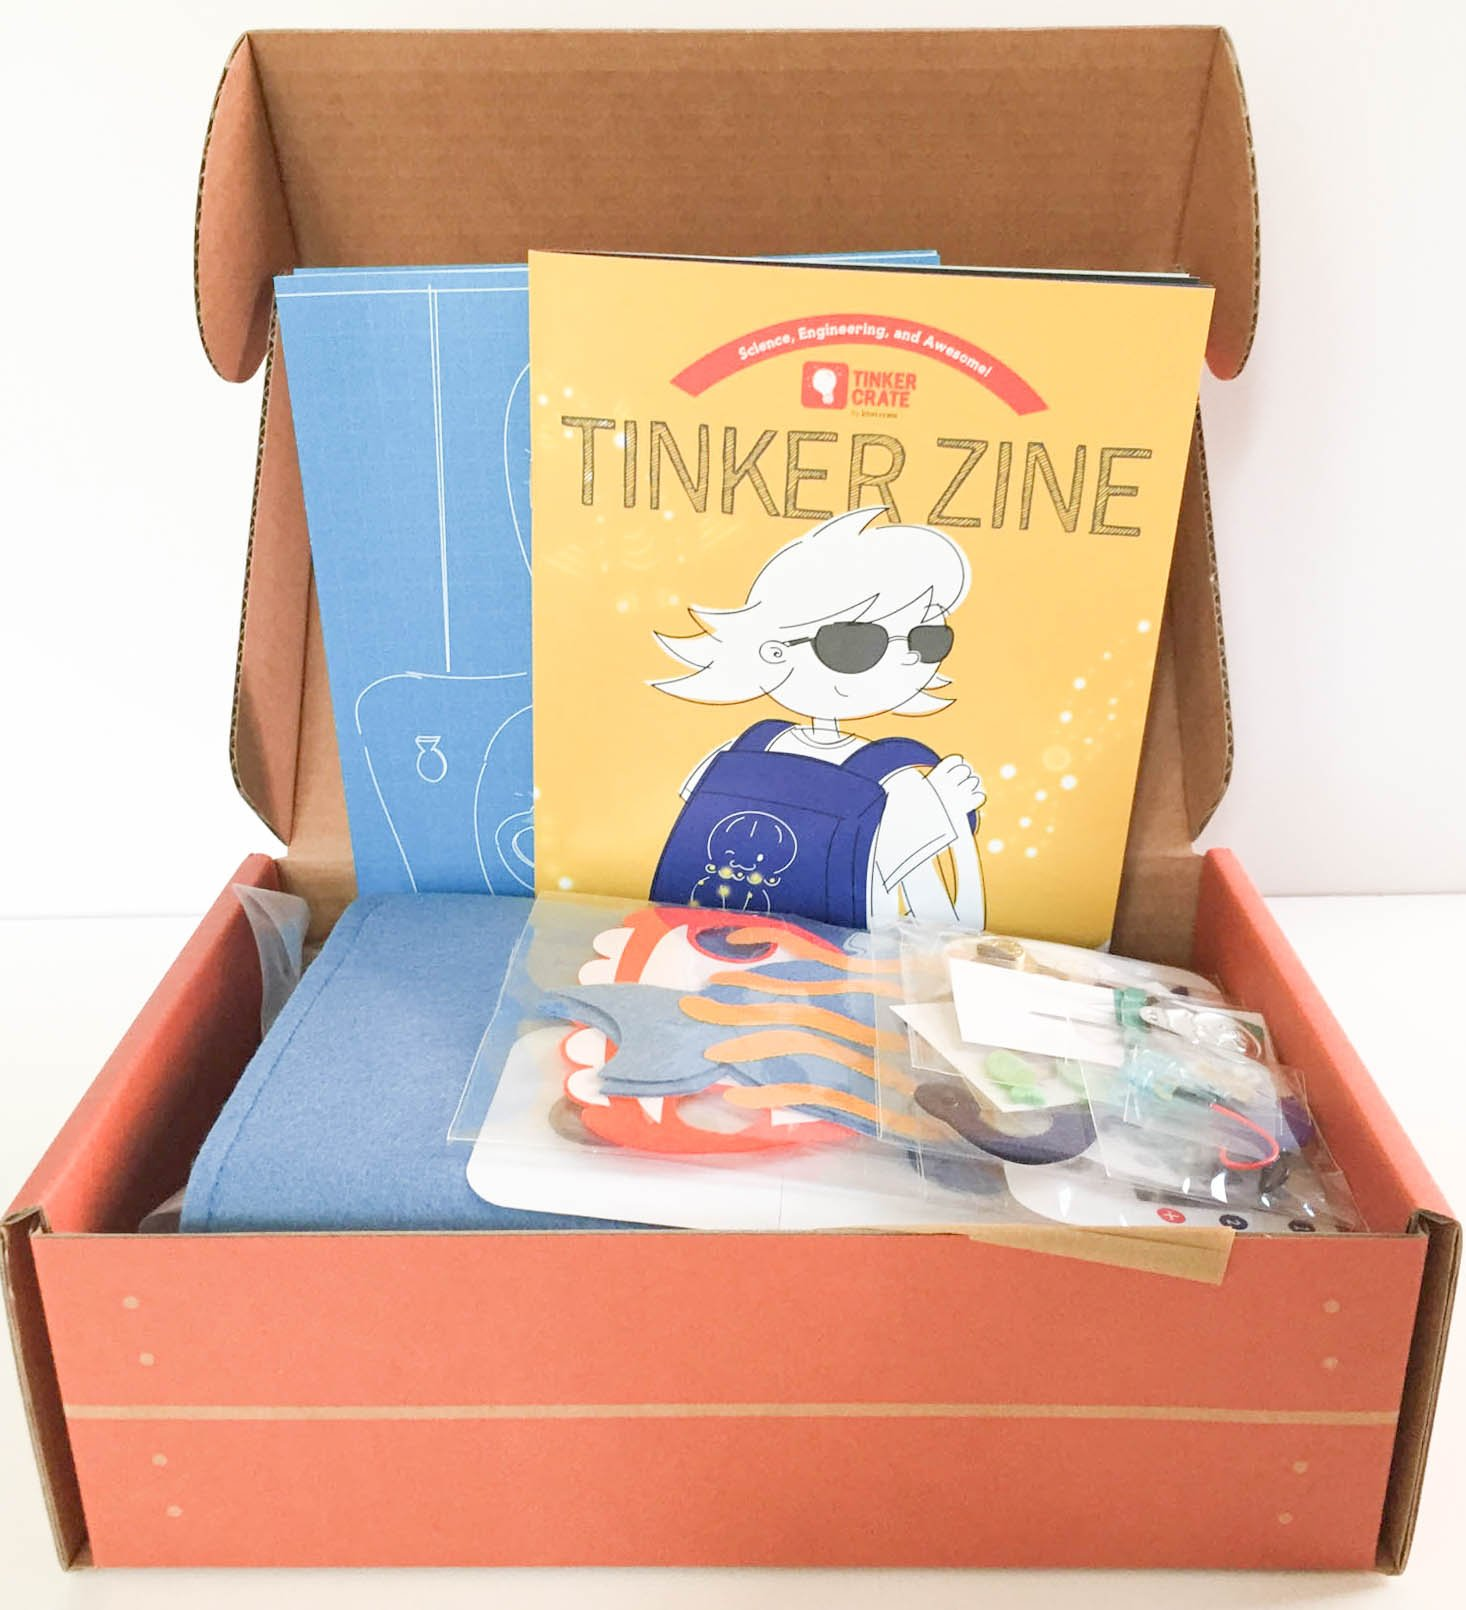 tinker-crate-september-2016-box-inside